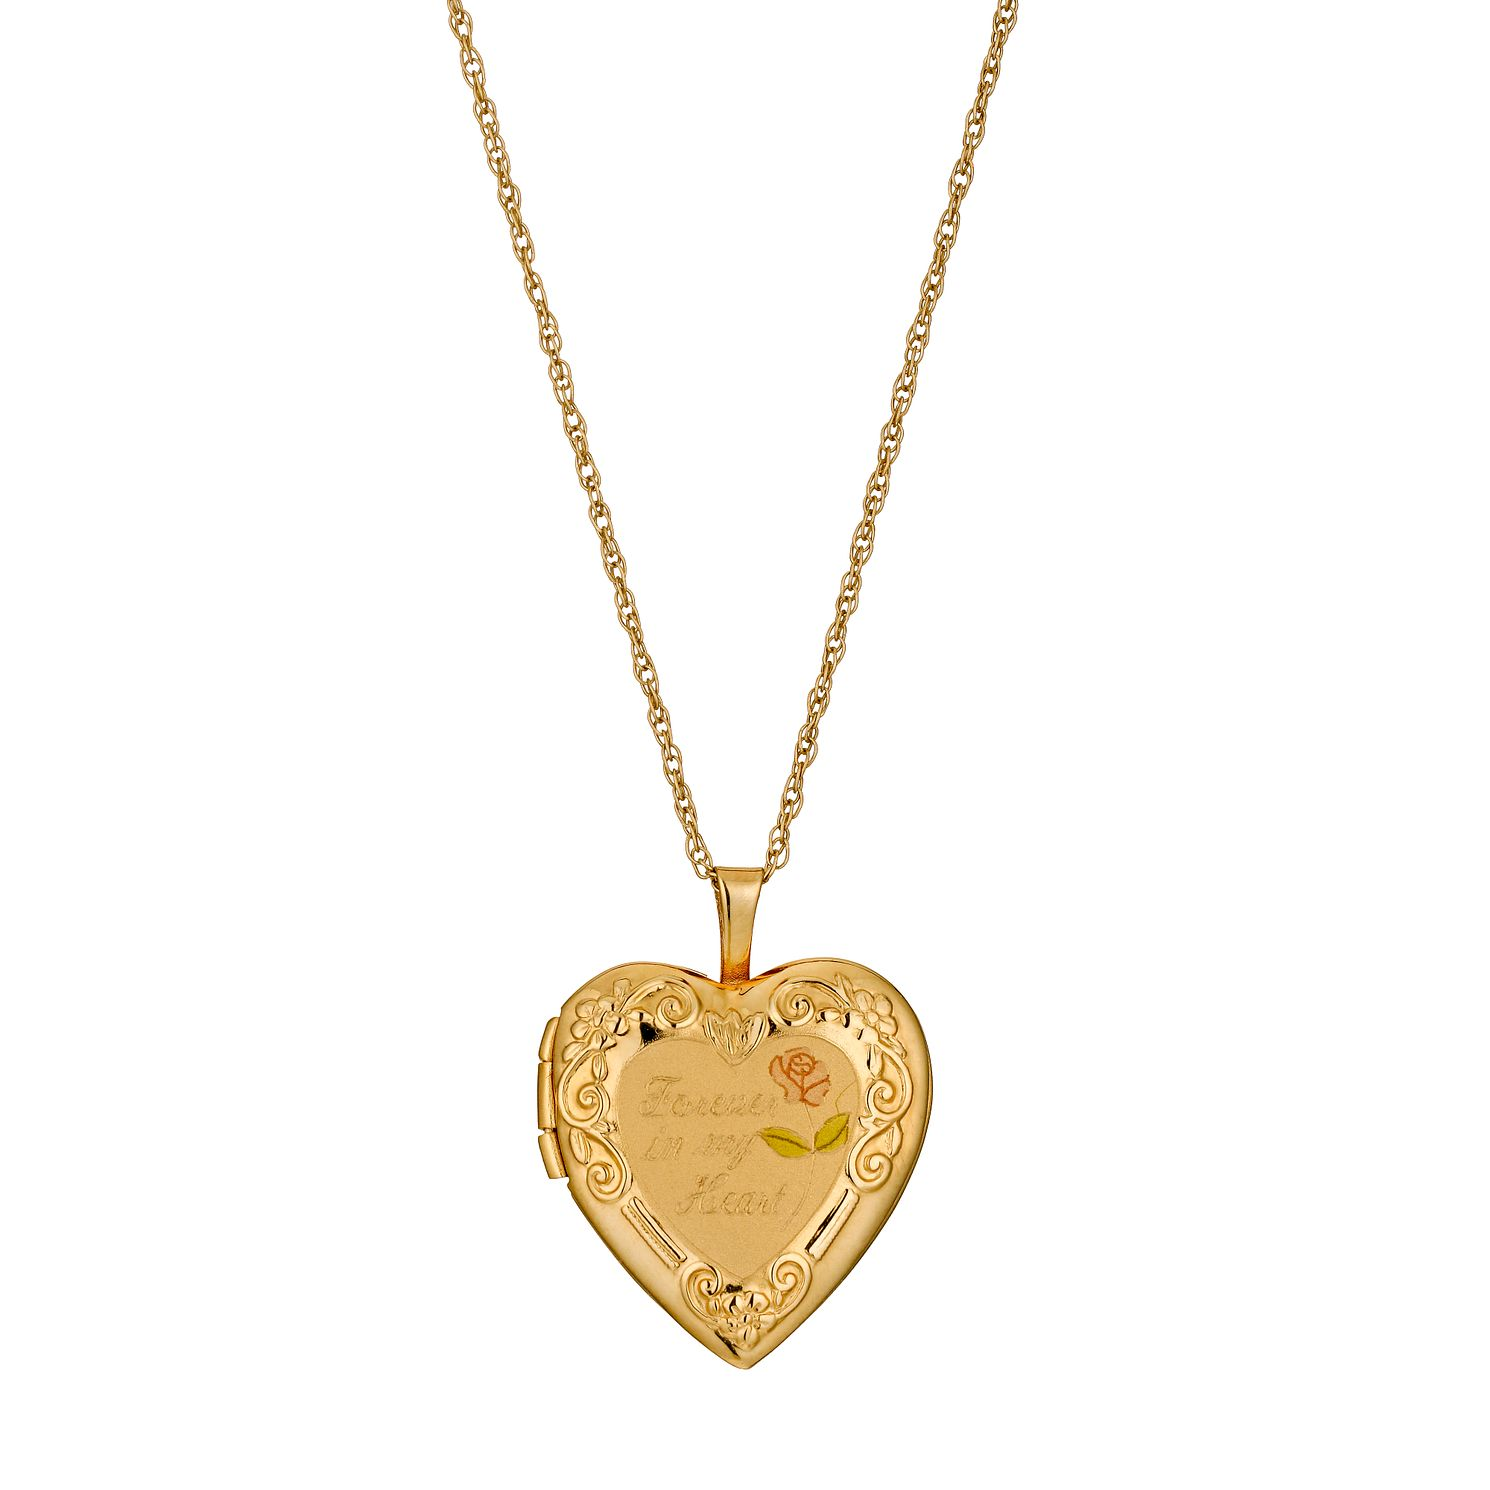 necklace amazon kids s lockets dp gold heart pendant locket childrens children jewelry com